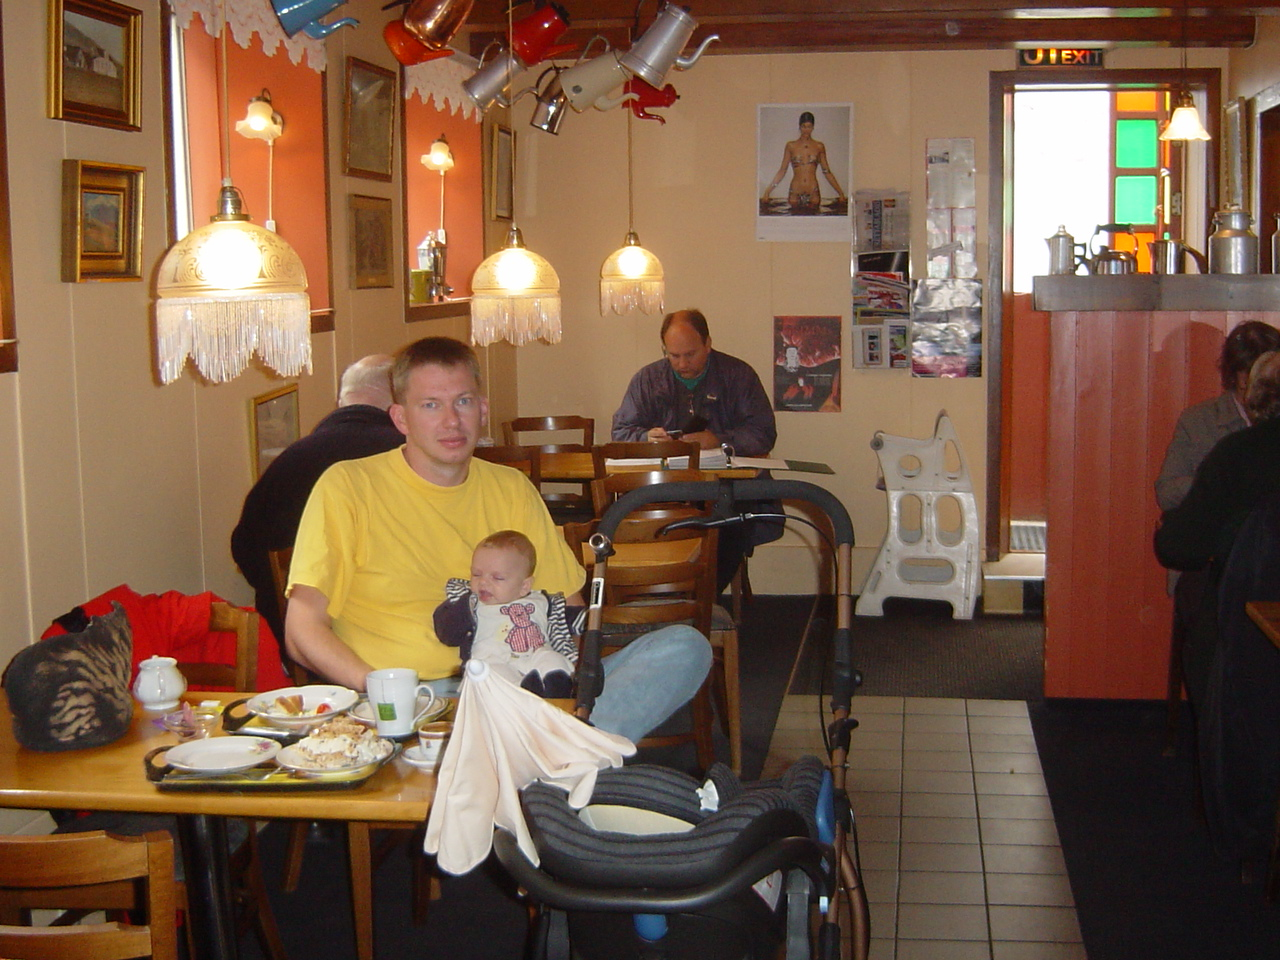 Stop for coffee and a sandwich. Especially for my brother: take a good ook at the calender on the wall in the back!